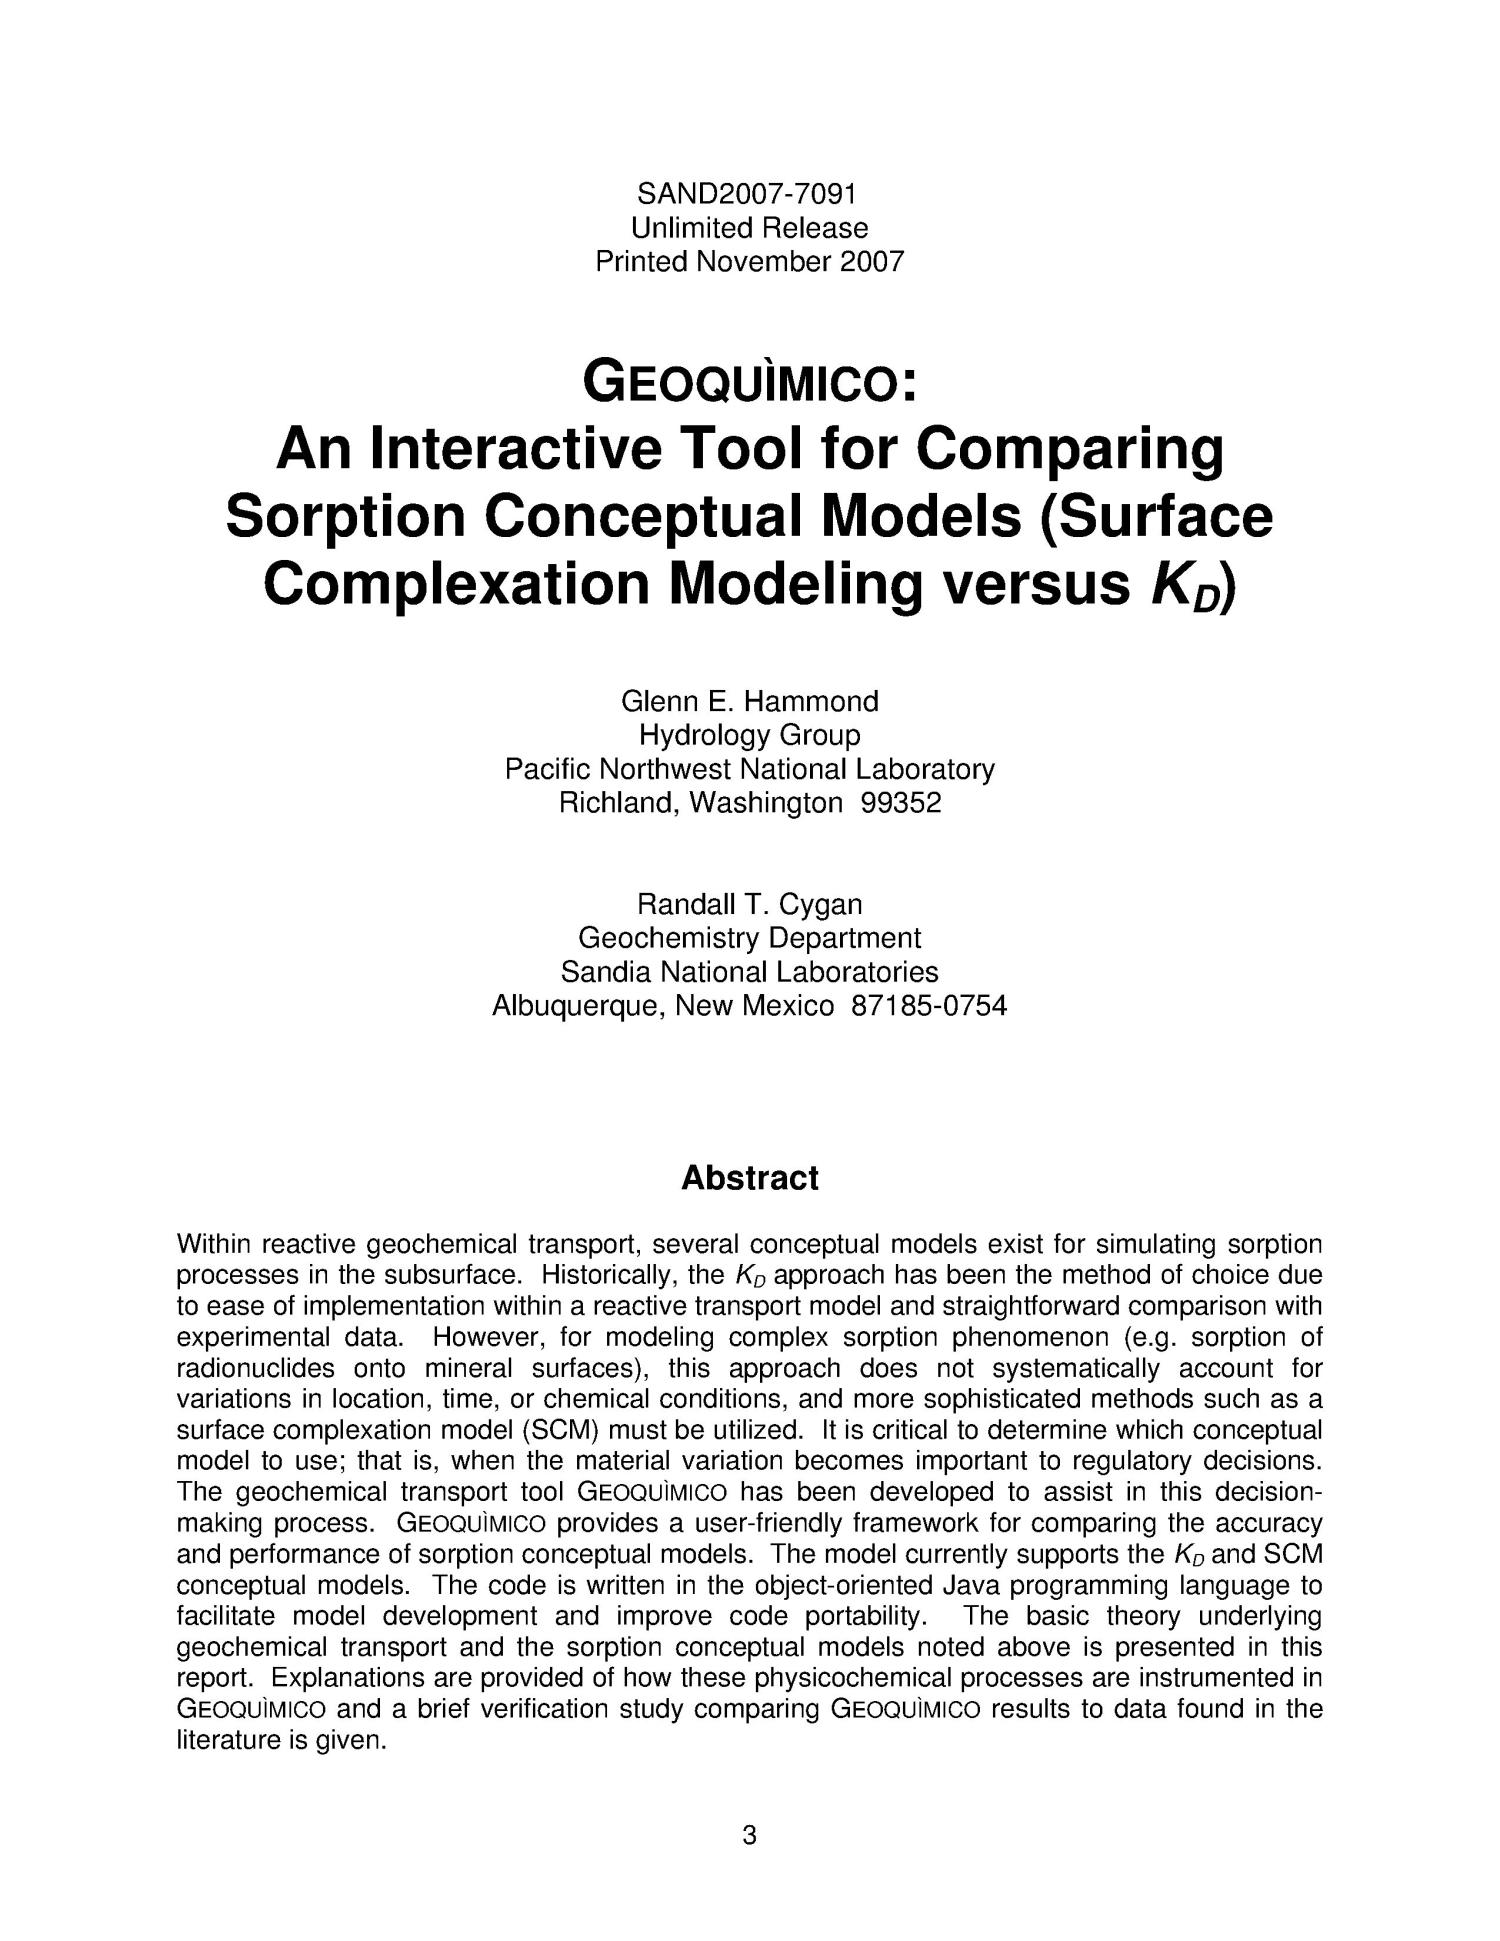 GEOQUÌMICO : an interactive tool for comparing sorption conceptual models (surface complexation modeling verus K[D]).                                                                                                      [Sequence #]: 3 of 26